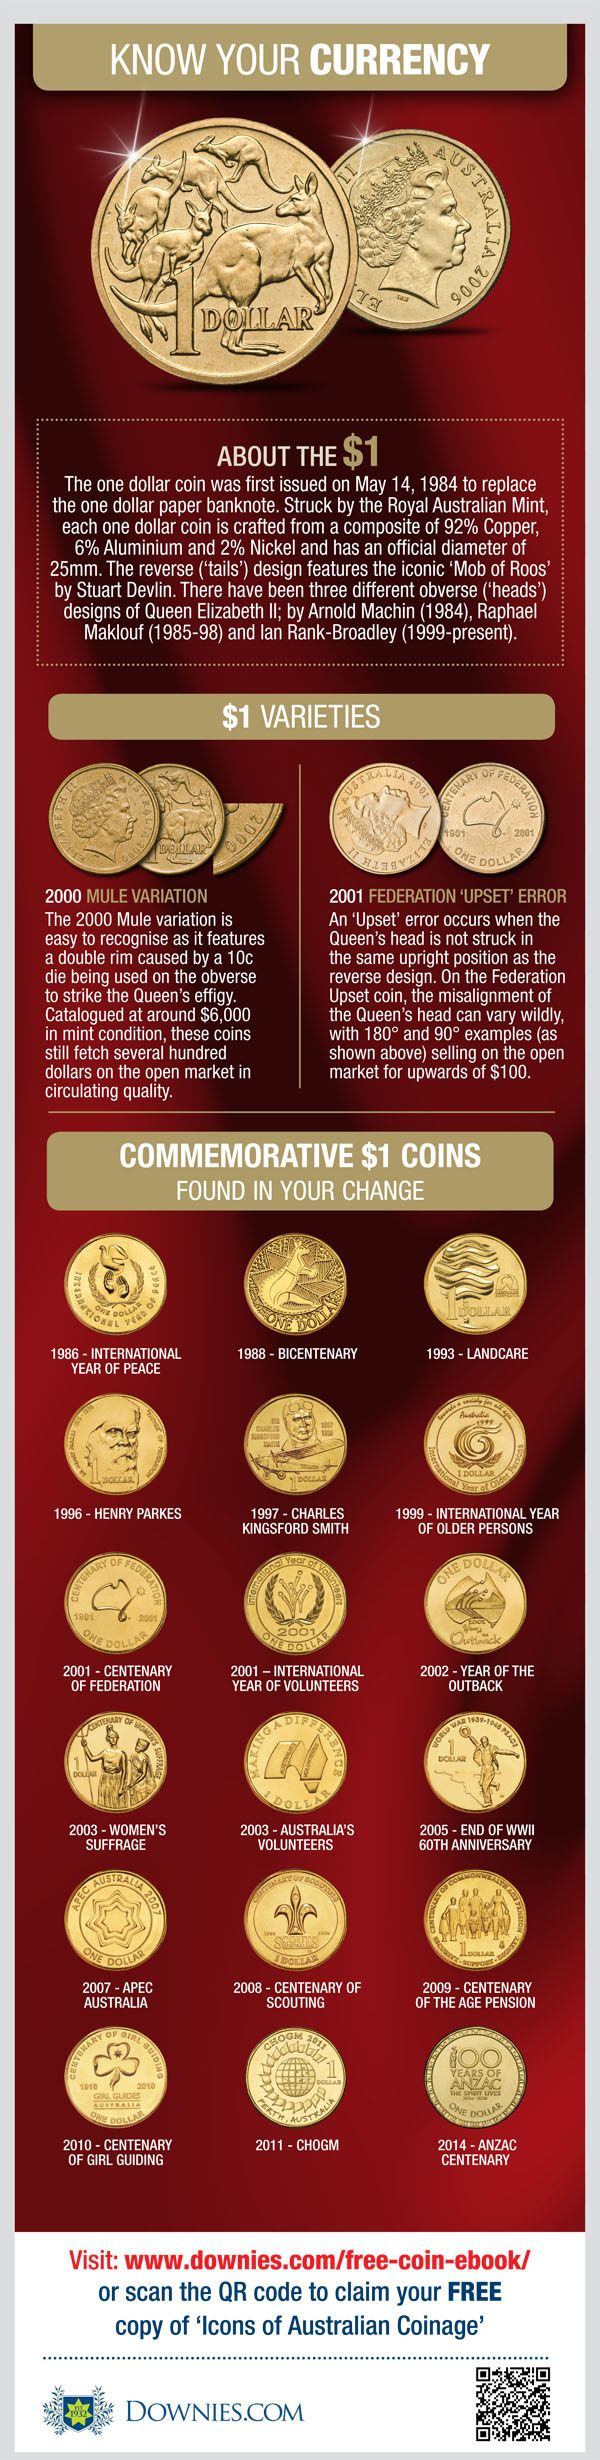 See how that dollar coin in your pocket could be worth $6,000! http://downies.com/knowyourcurrency1dollar.aspx #infographic #numismatics #currency #rarities